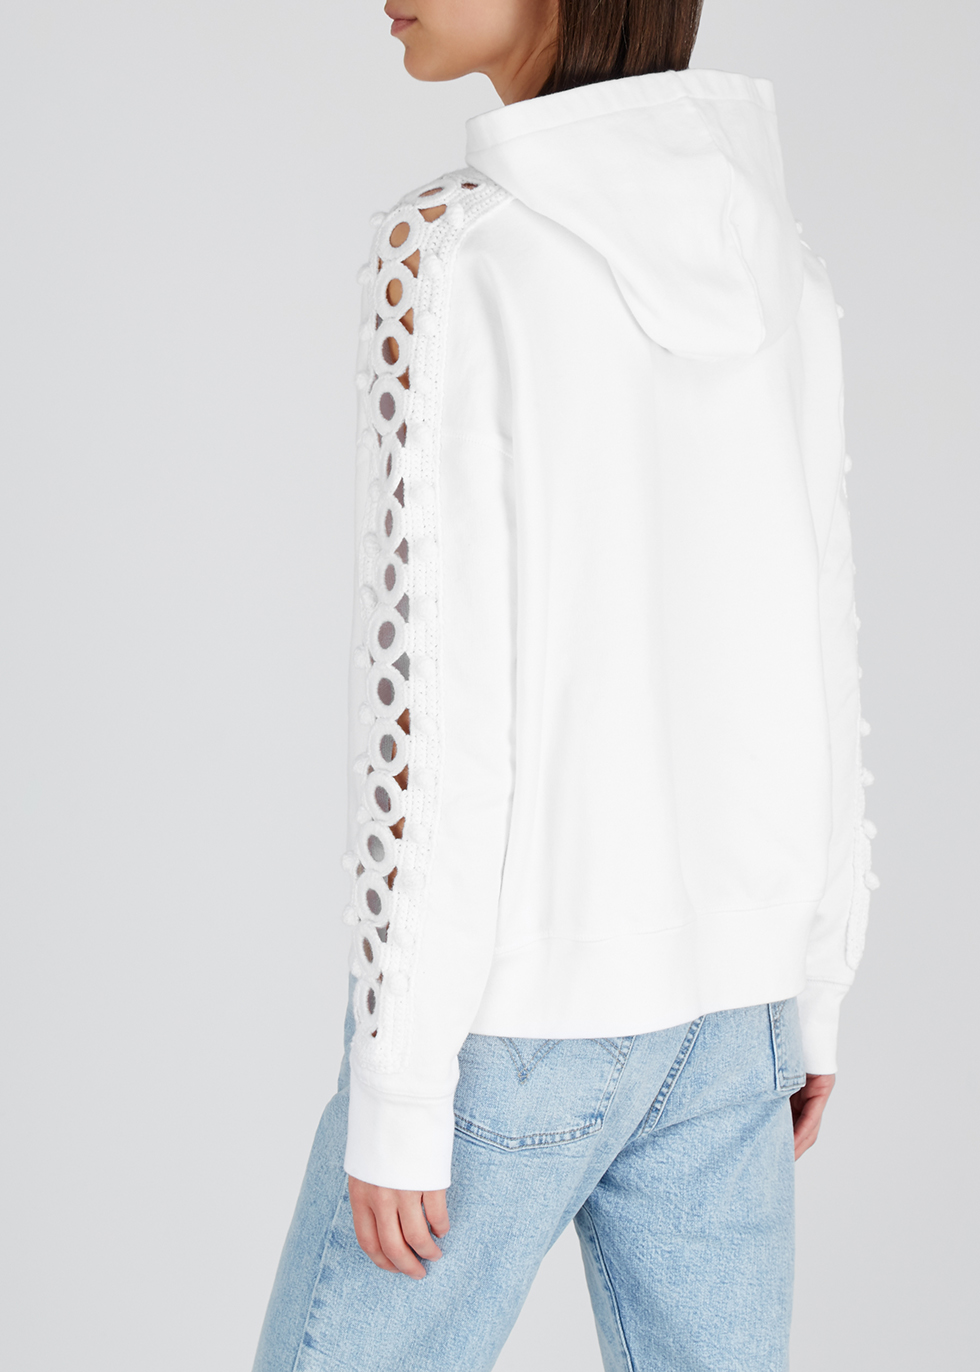 White crochet-trimmed cotton sweatshirt - Levi's Made & Crafted